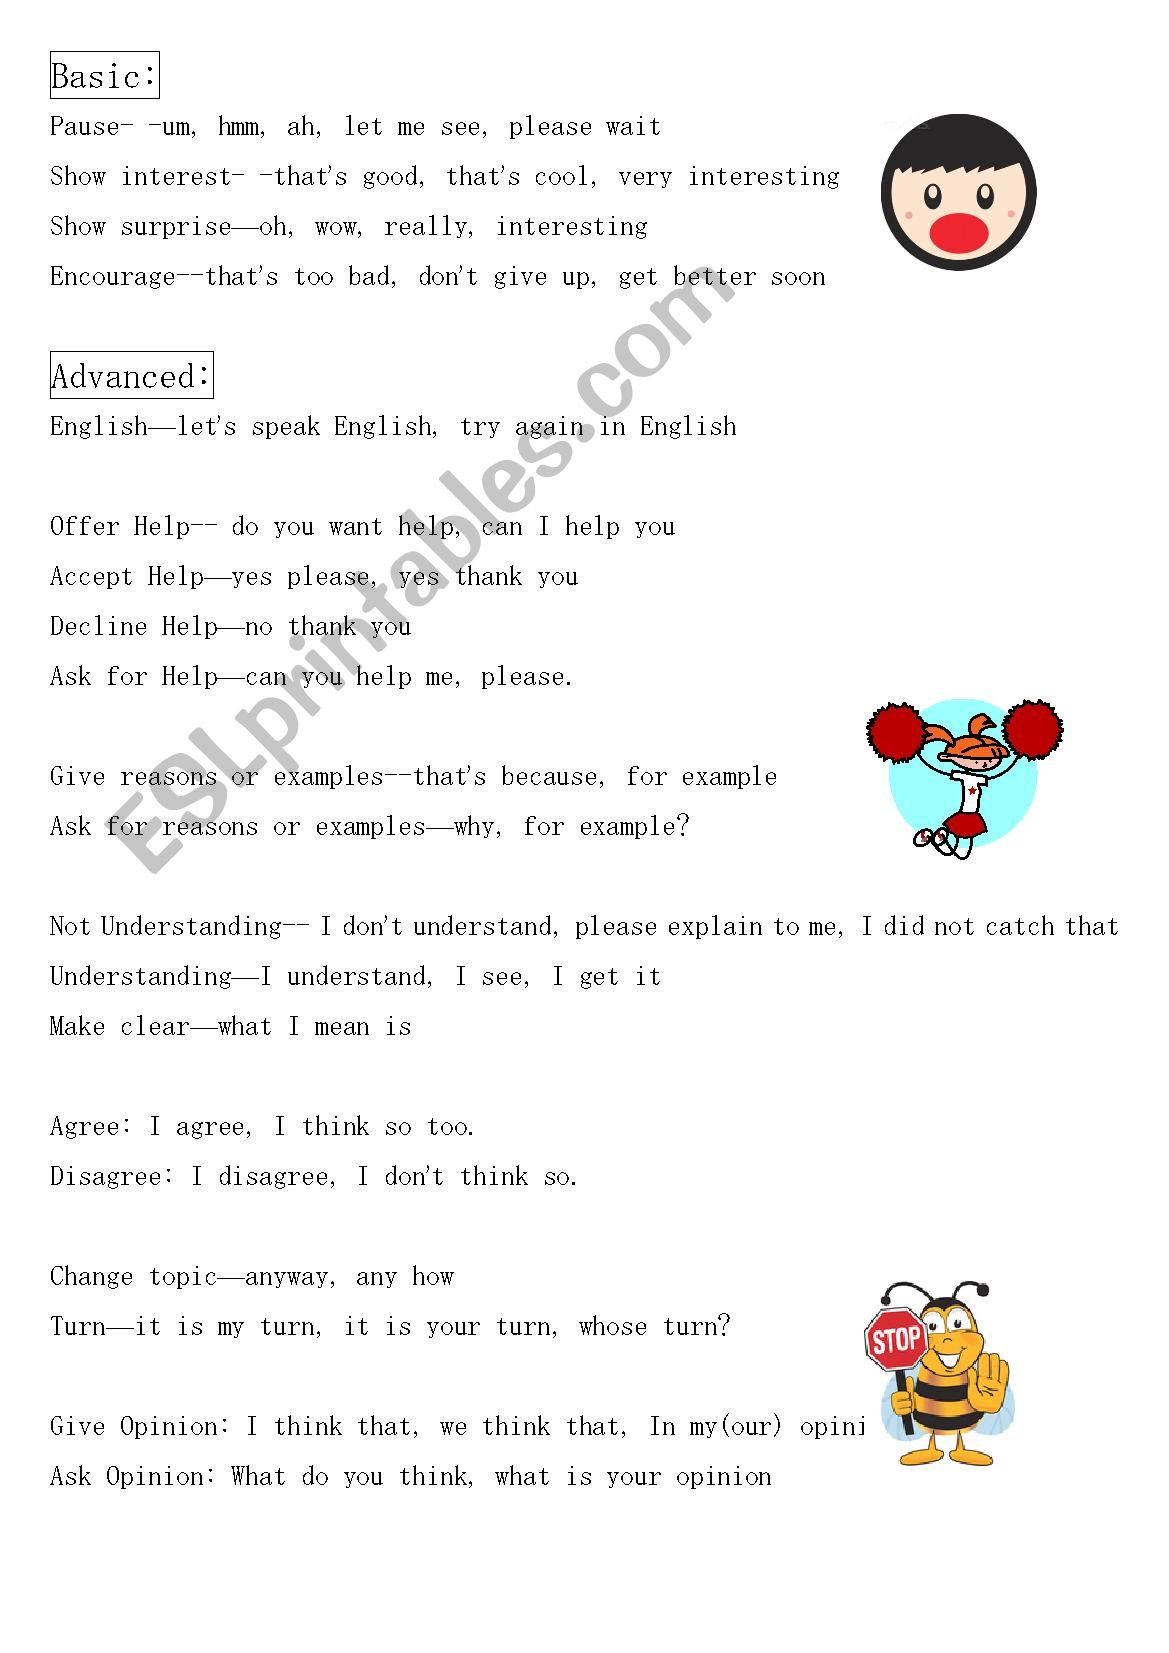 English Worksheets Discourse Markers